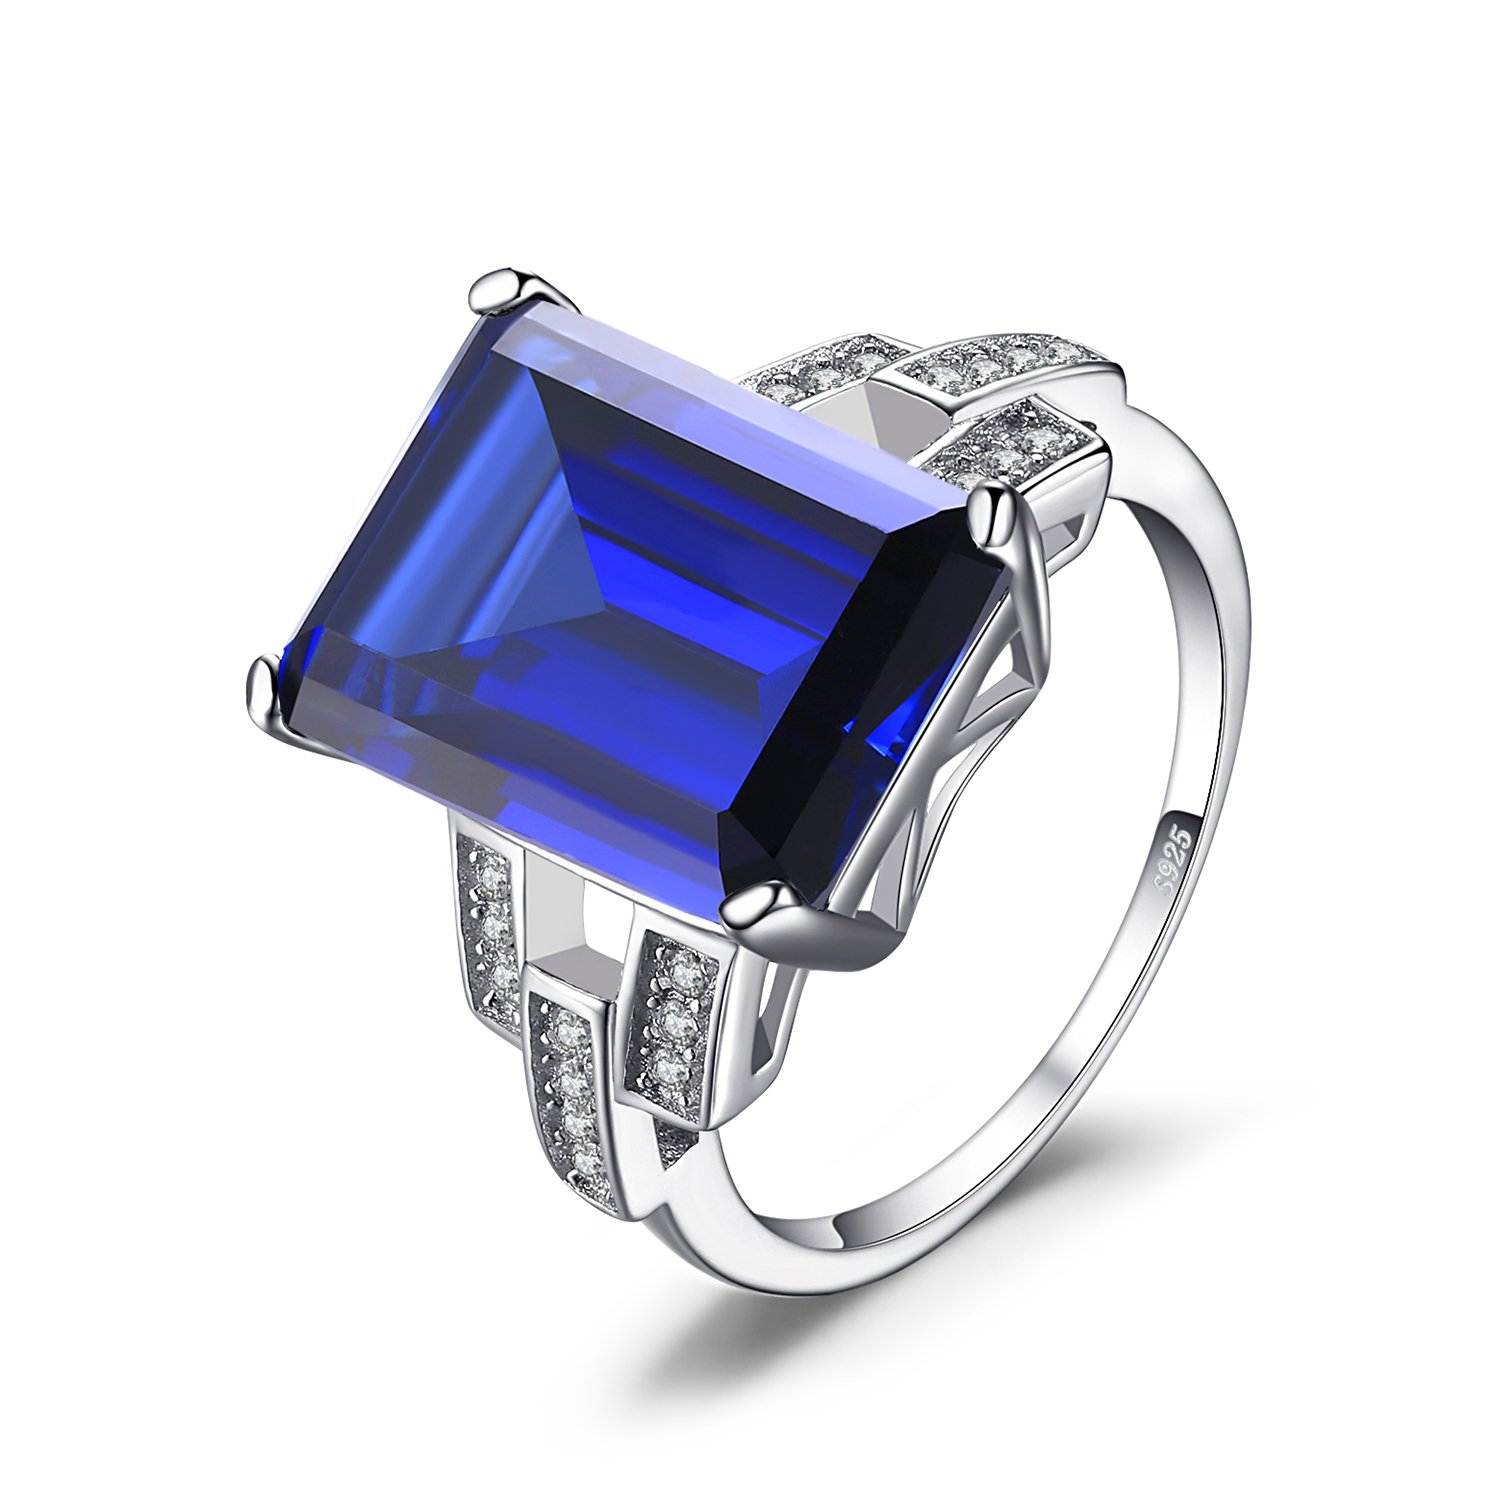 JewelryPalace Luxury Green Nano Russian Emerald Blue Sapphire Red RubyCocktail Ring 925 Sterling Silver 02886CLR